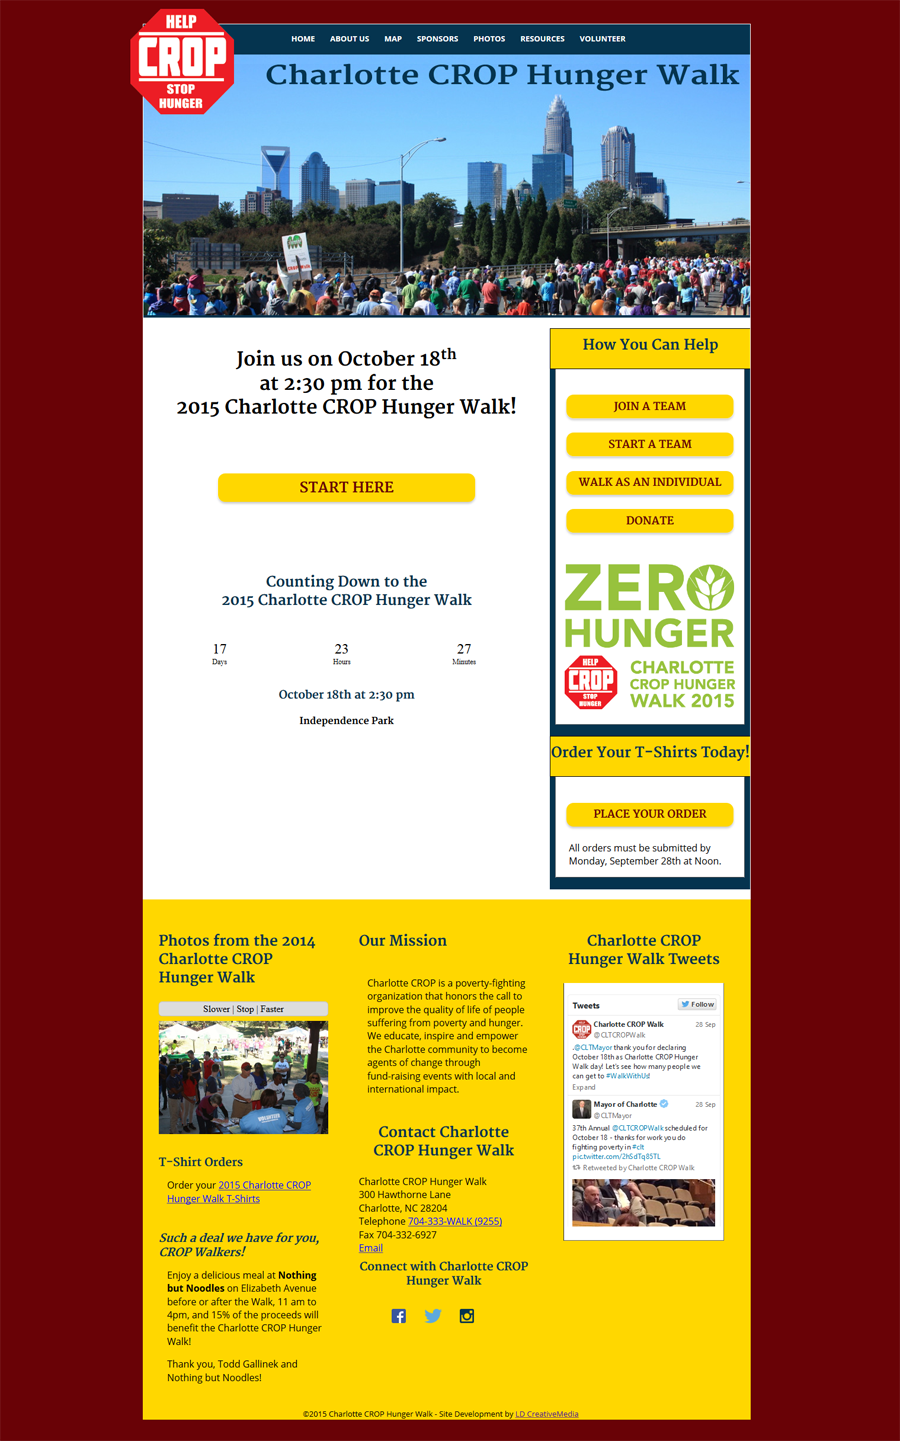 New Responsive Website for Charlotte CROP Hunger Walk